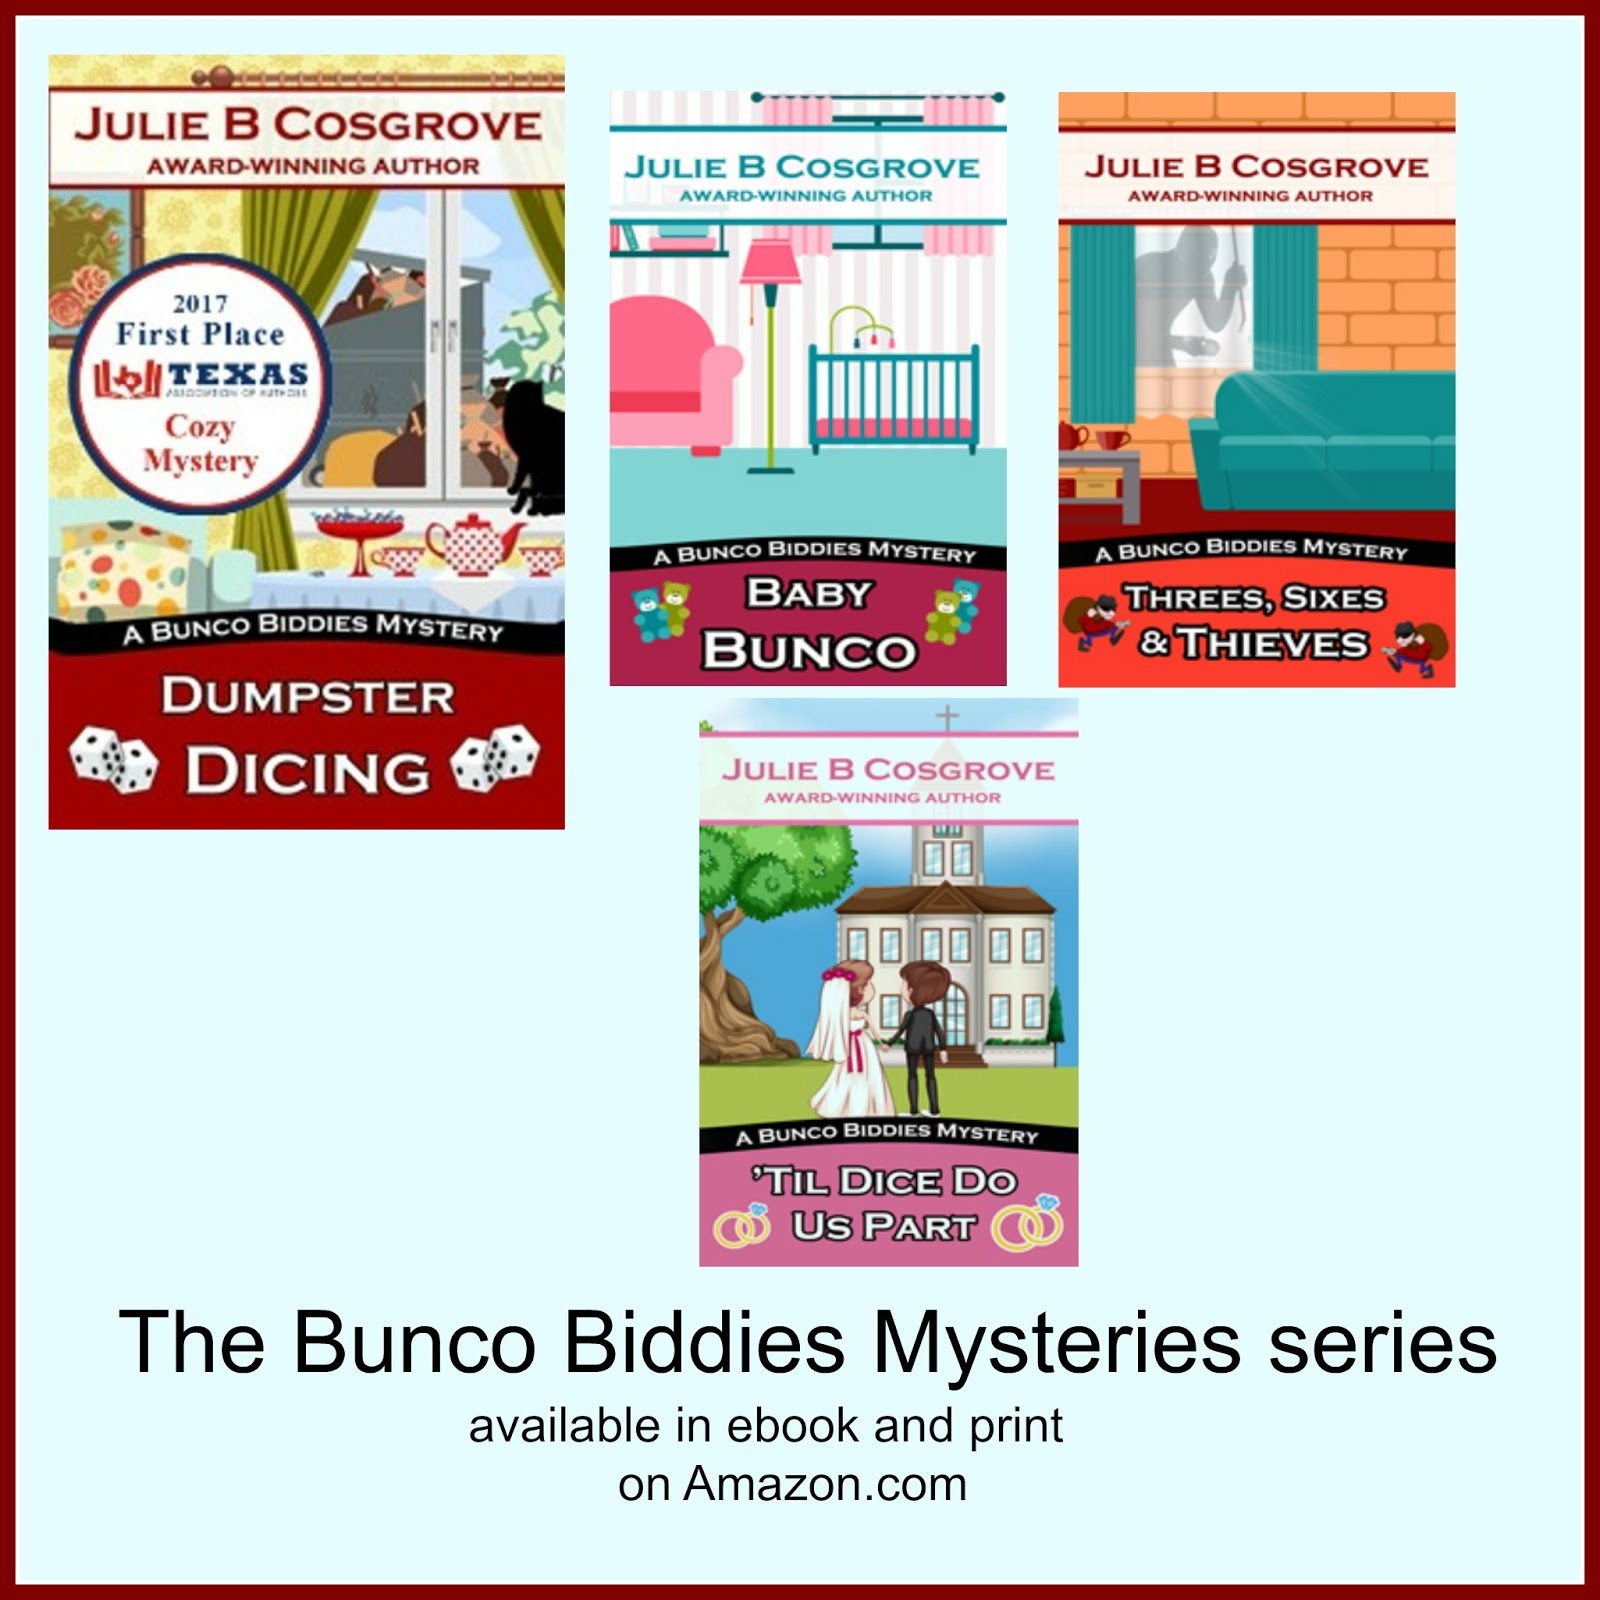 The Bunco Buddies Mysteries Series